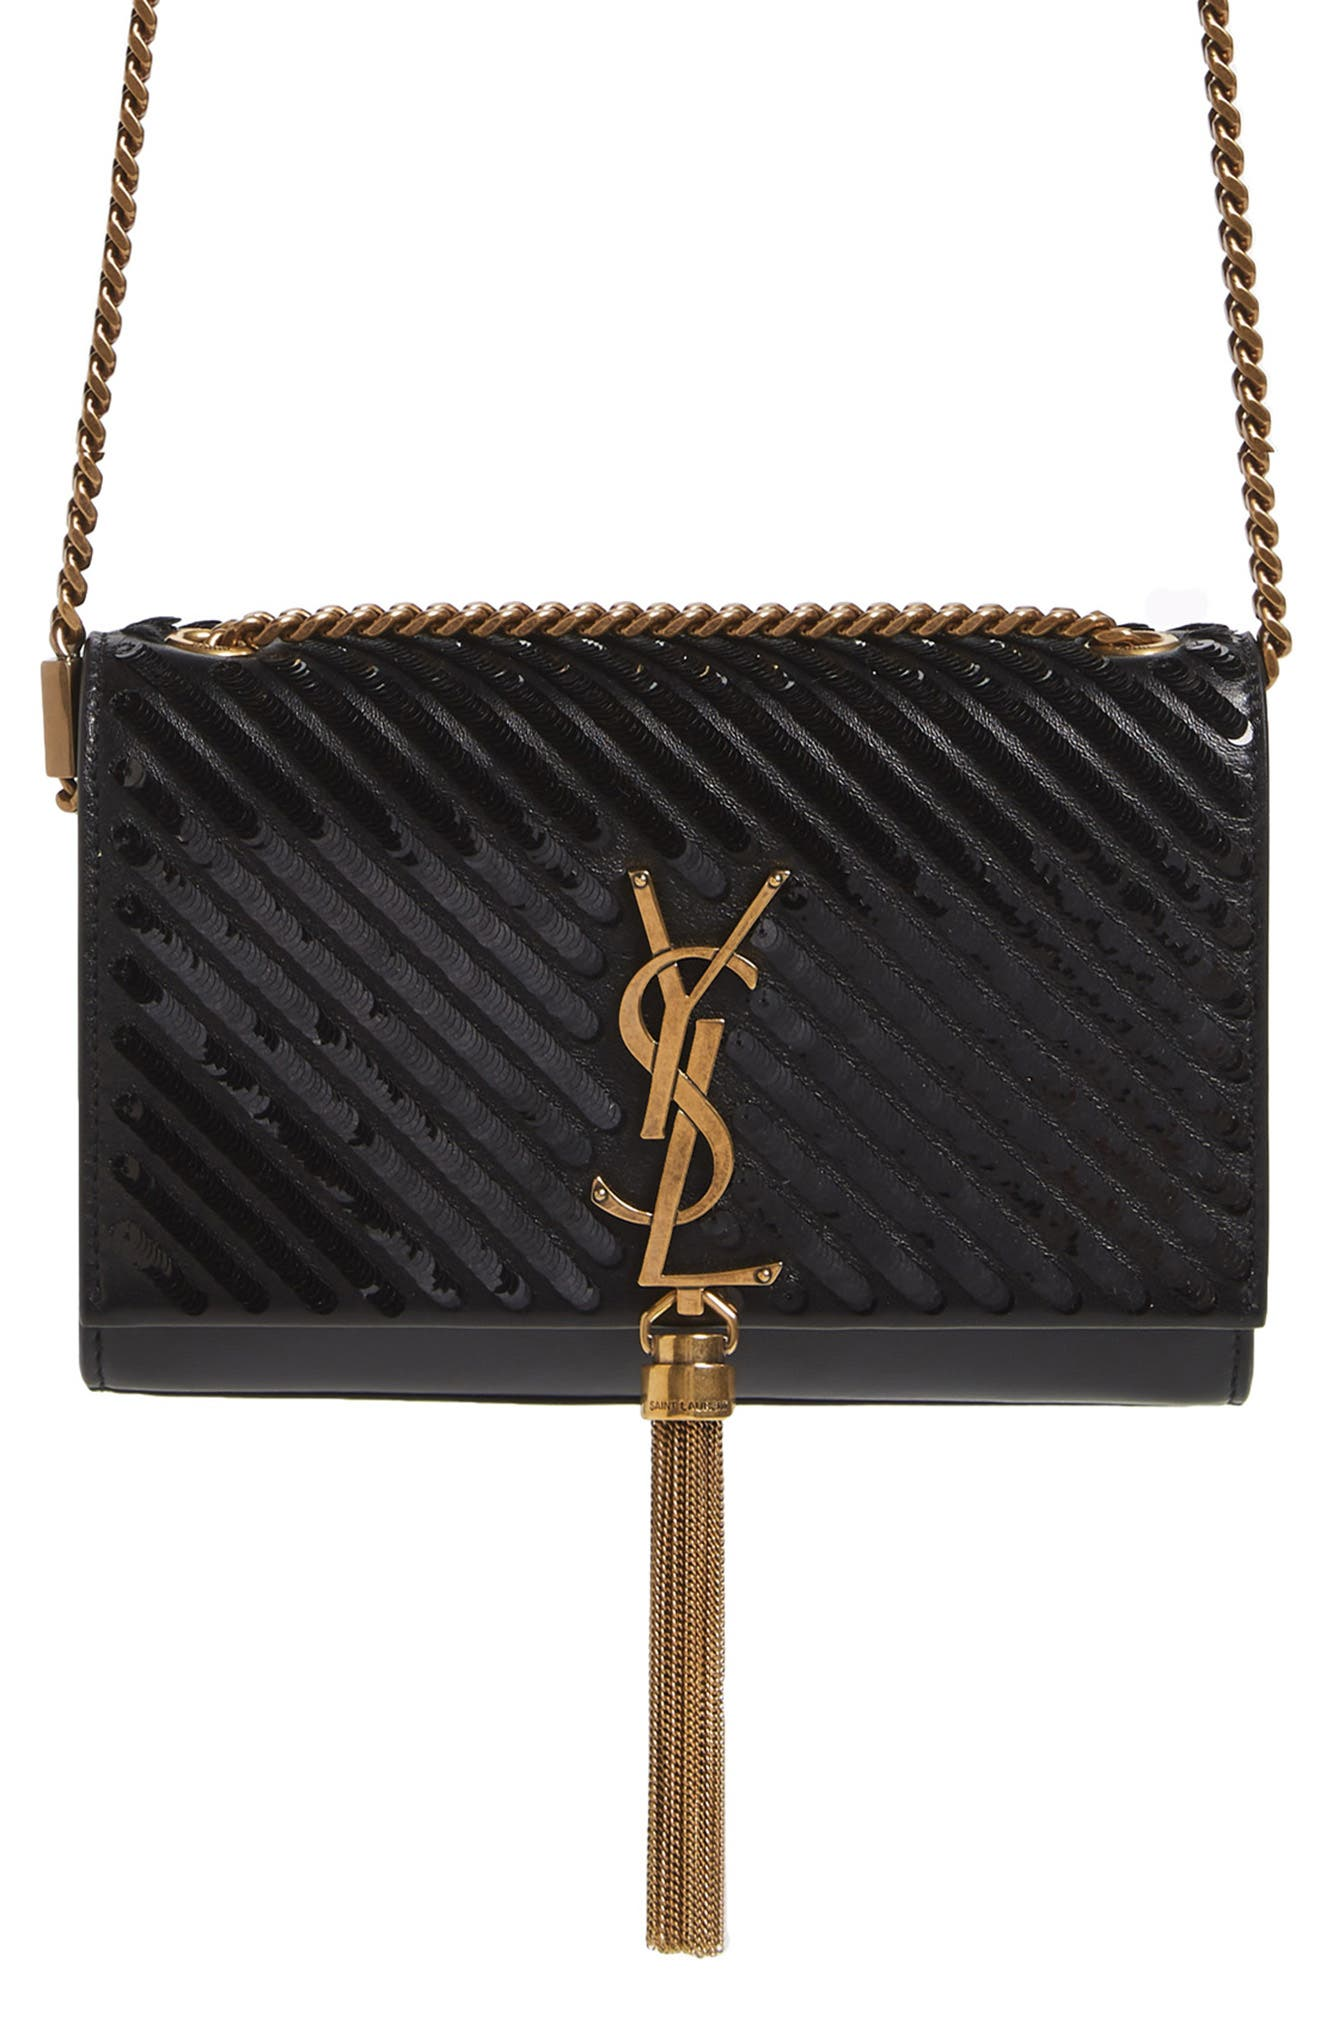 Saint Laurent Small Kate Sequin Leather Crossbody Bag